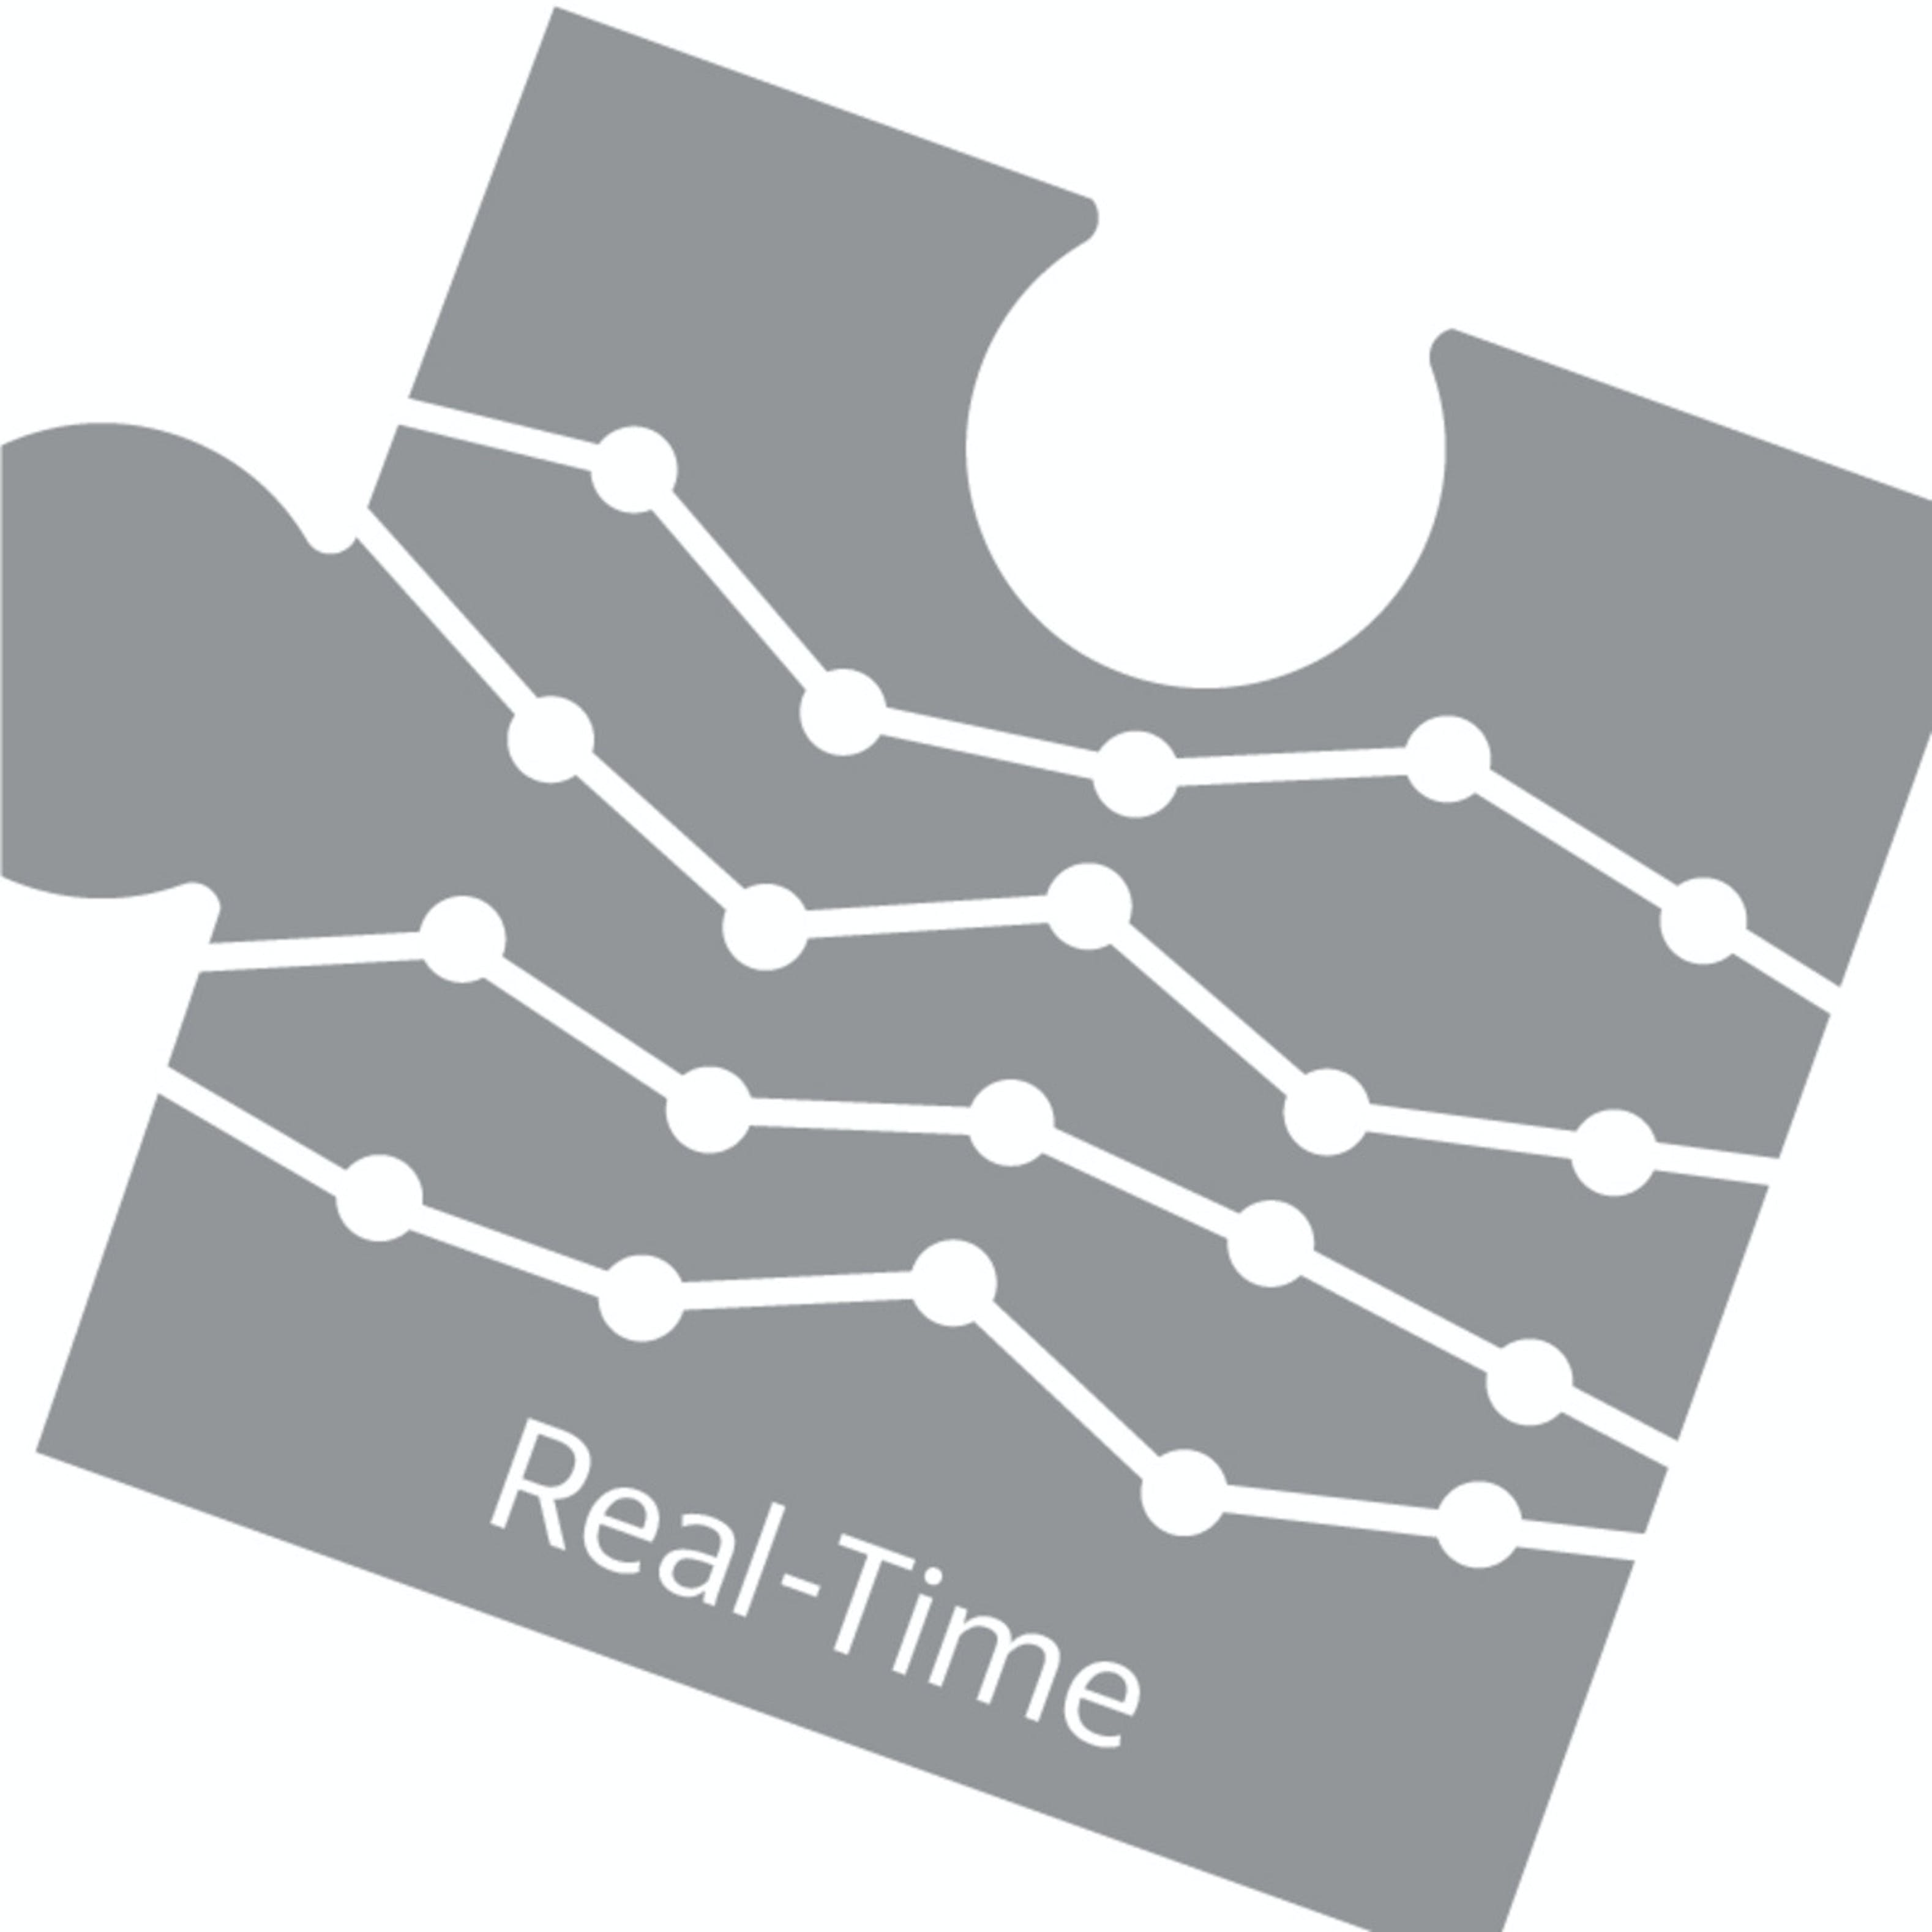 Big Data Applications: Real-Time Streaming | Coursera